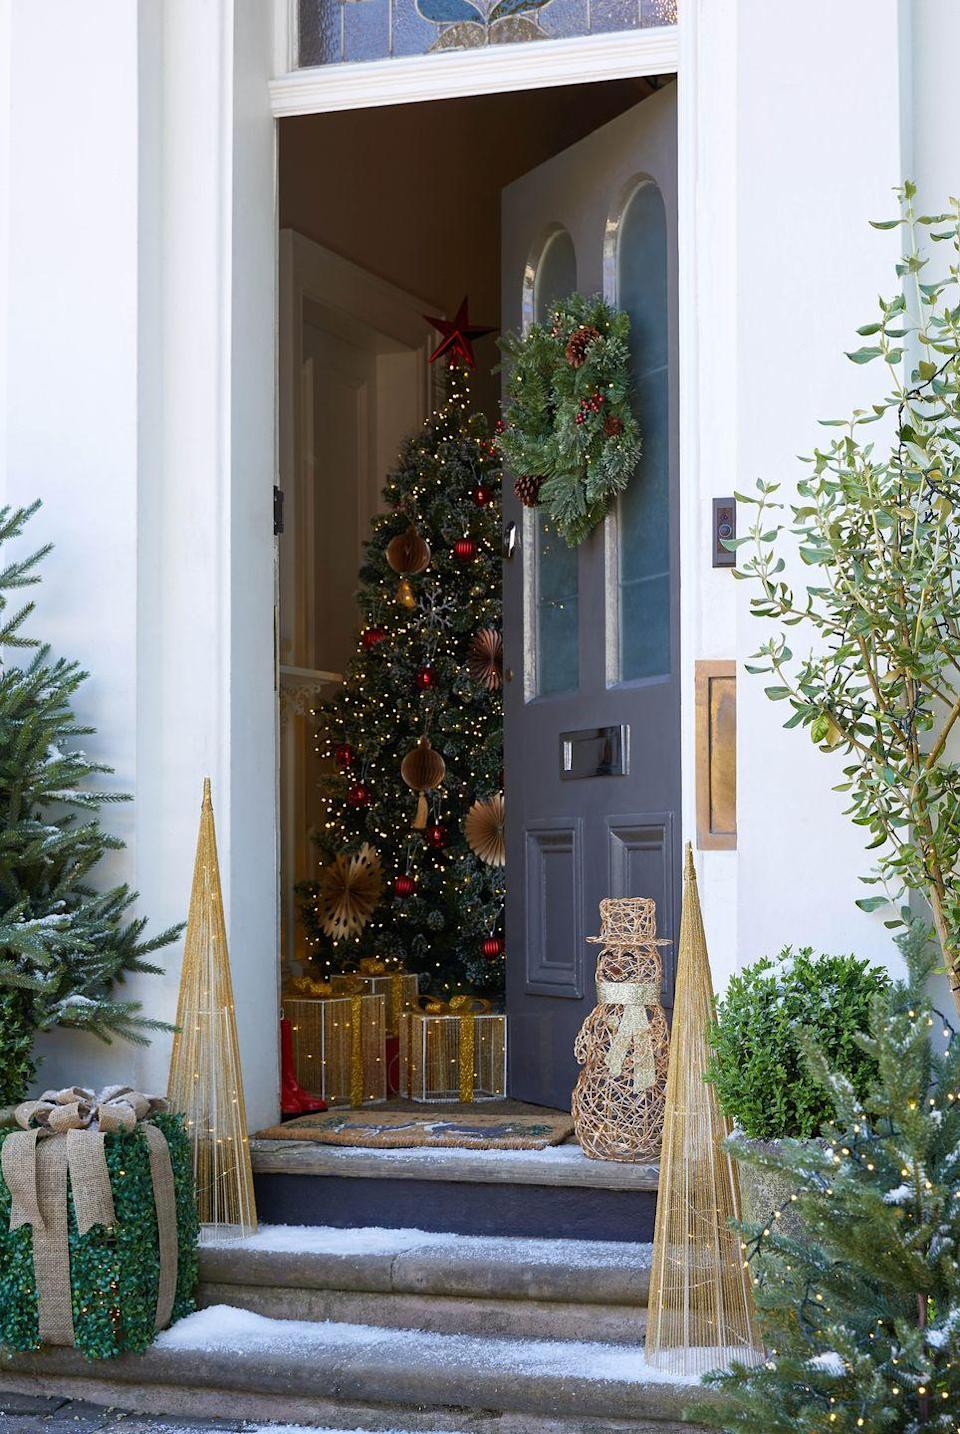 """<p><a href=""""https://www.housebeautiful.com/uk/decorate/exterior/a34140487/doorscaping-autumn-front-door-displays/"""" rel=""""nofollow noopener"""" target=""""_blank"""" data-ylk=""""slk:Doorscaping"""" class=""""link rapid-noclick-resp"""">Doorscaping</a> — one of Instagram's biggest trends — is not going anywhere this Christmas. As well as framing your doorway with foliage, why not hang a wreath on your door, place fun festive characters outside or string lights around hedges? </p>"""